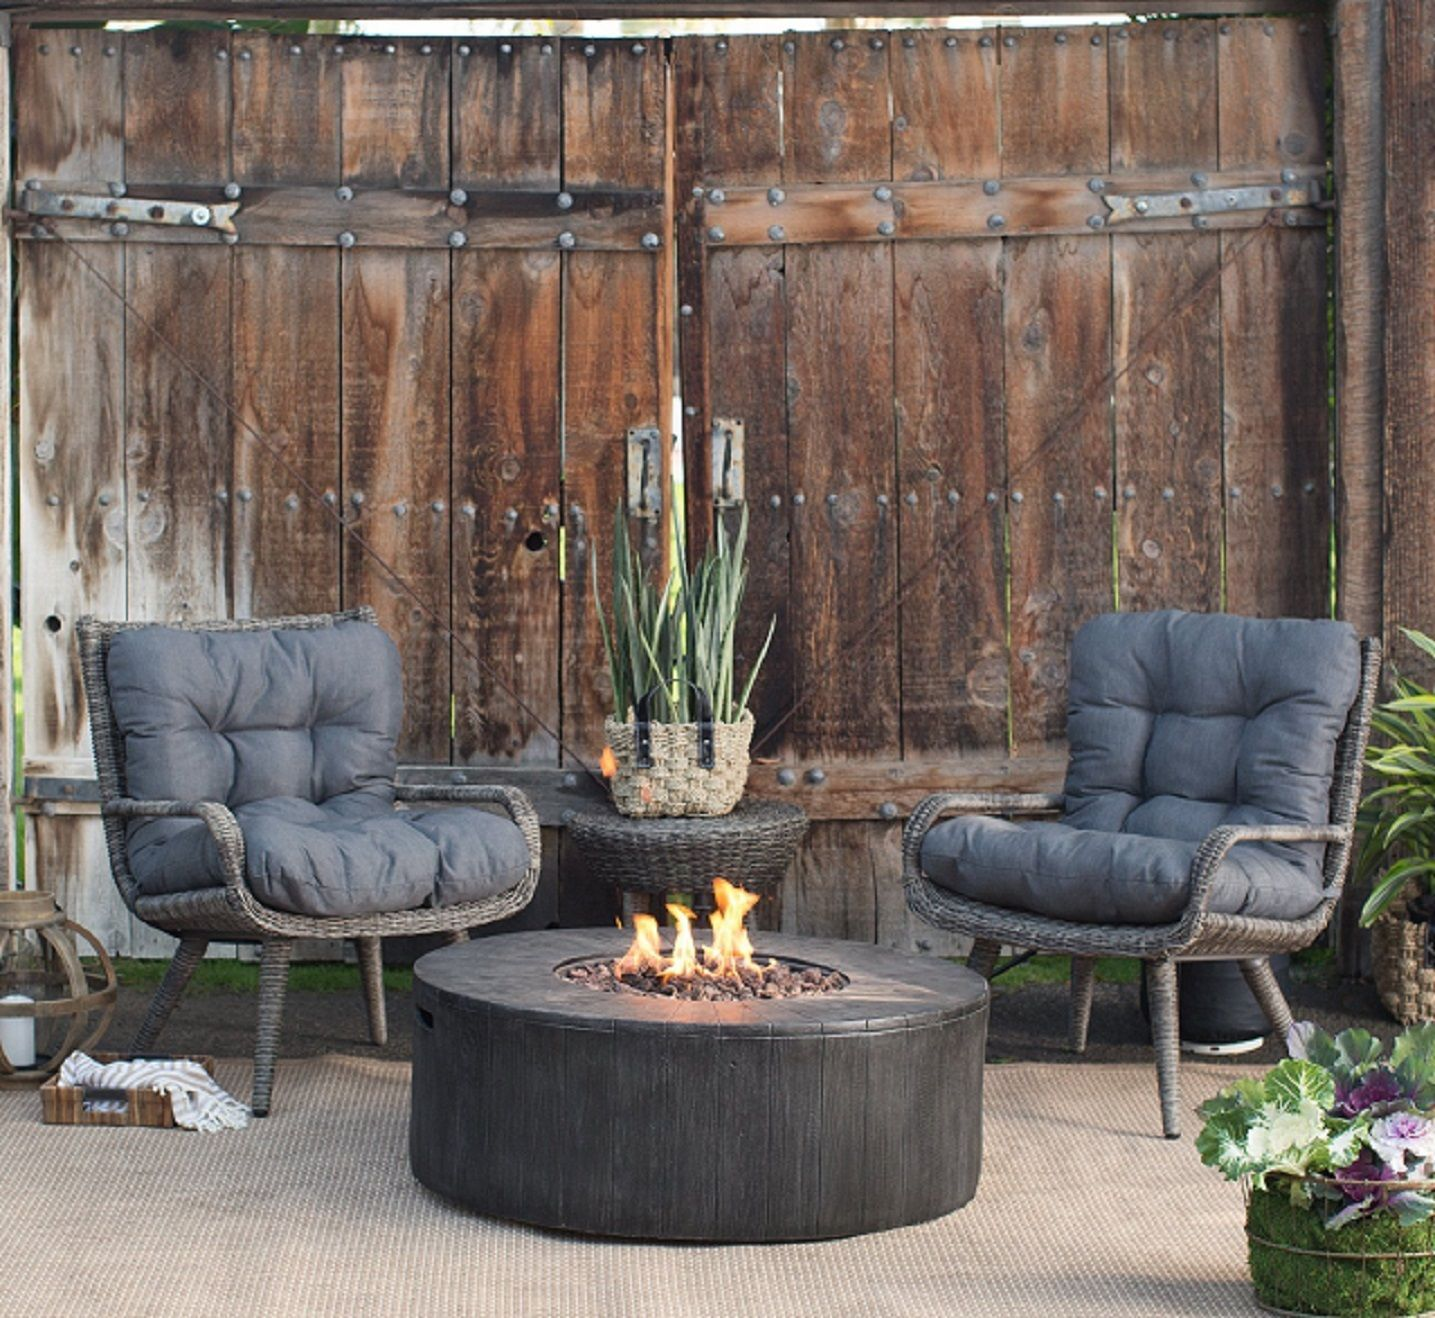 Outdoor Patio Furniture 4pc Fall Chat Set Chairs Table Propane Firepit Gas Heat Gas Firepit Propane Fire Pit Fire Pit Chat Set